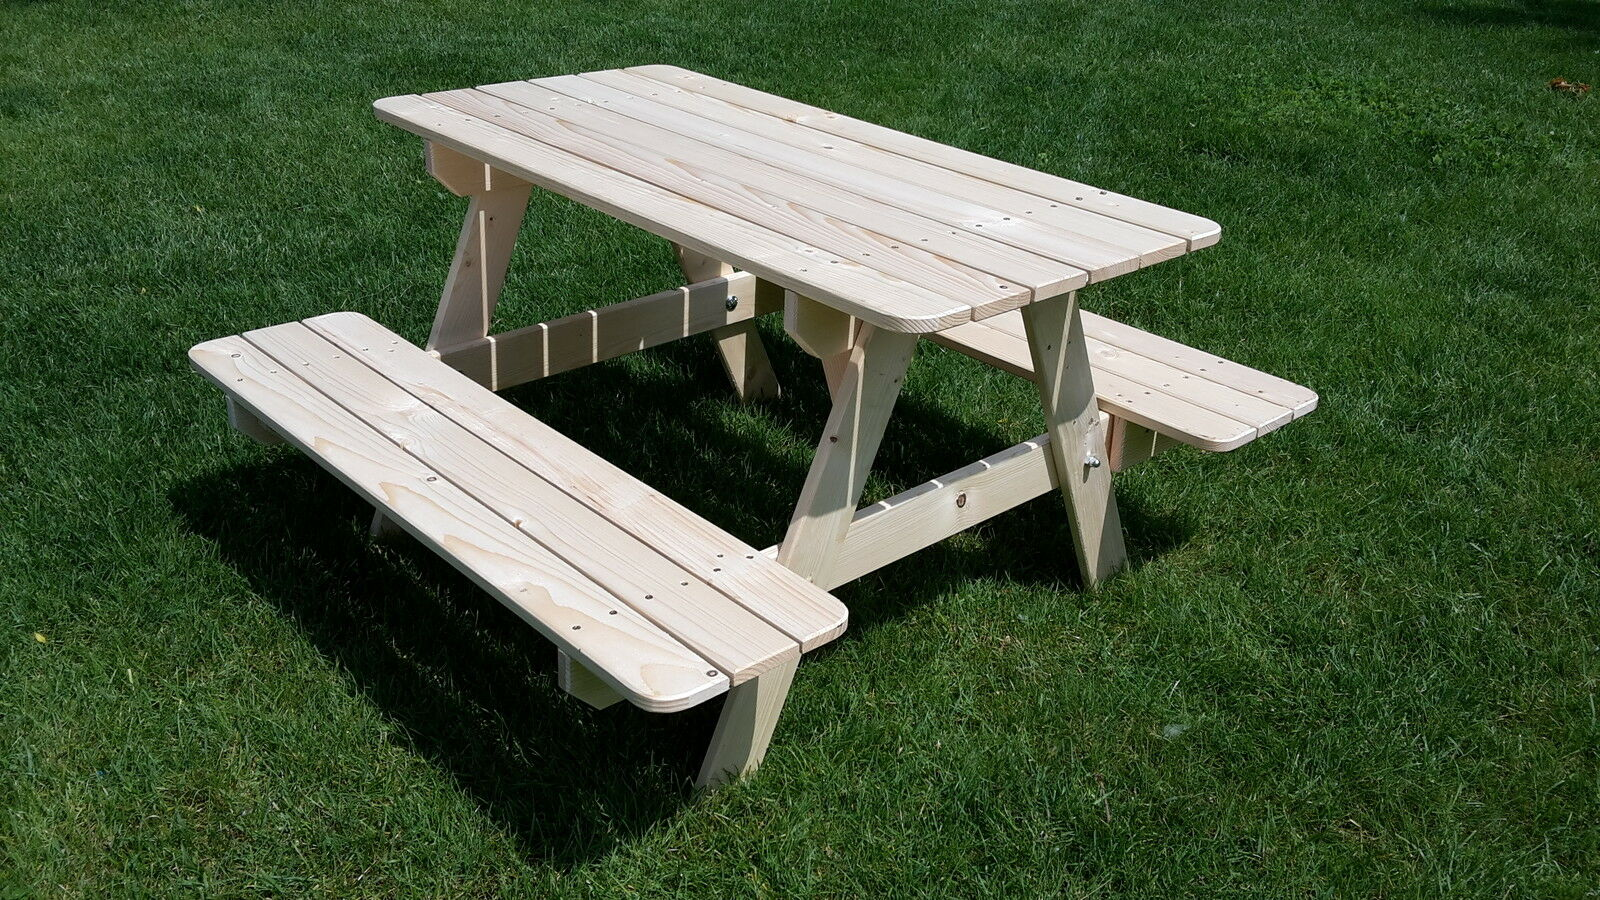 picknicktisch kinder holz kindertisch kindersitzgruppe 4 sitzer gartenbank tisch ebay. Black Bedroom Furniture Sets. Home Design Ideas